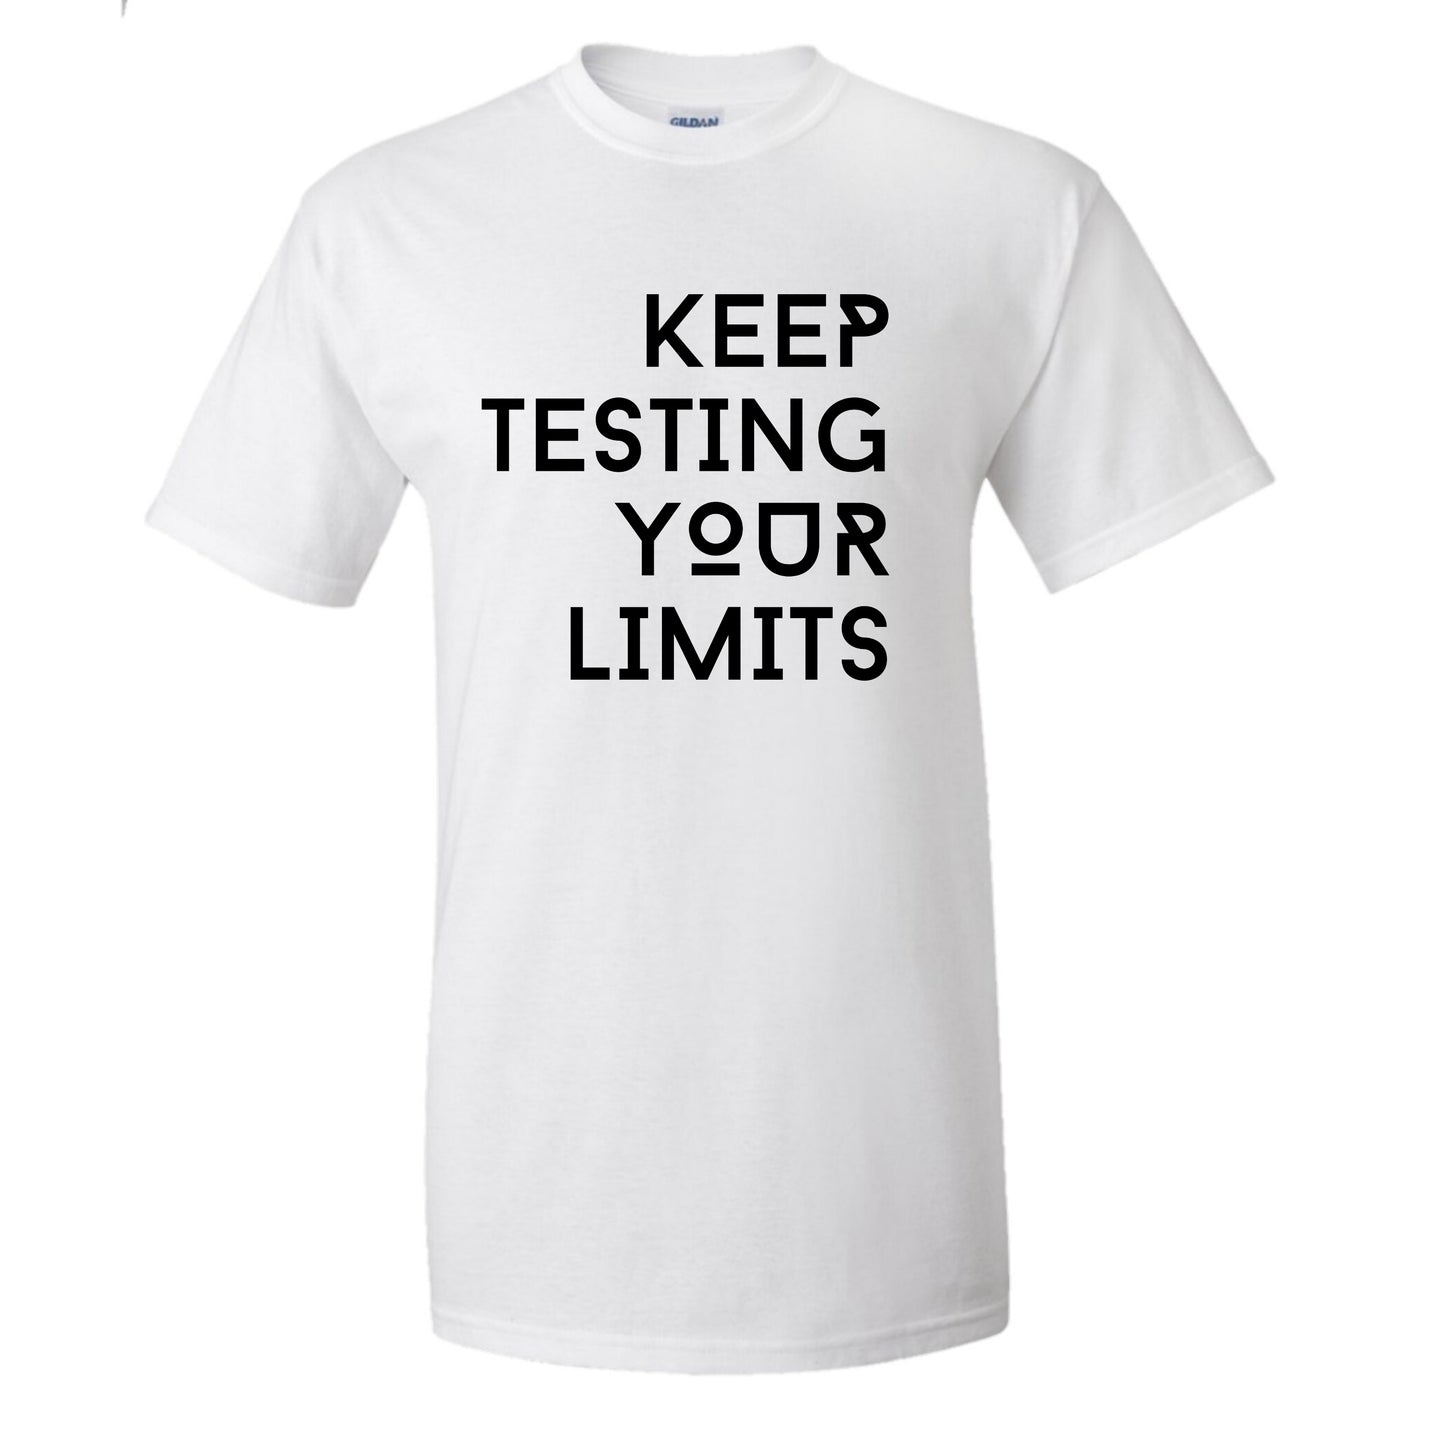 Keep Testing Your Limits TSHIRT MENS WHITE